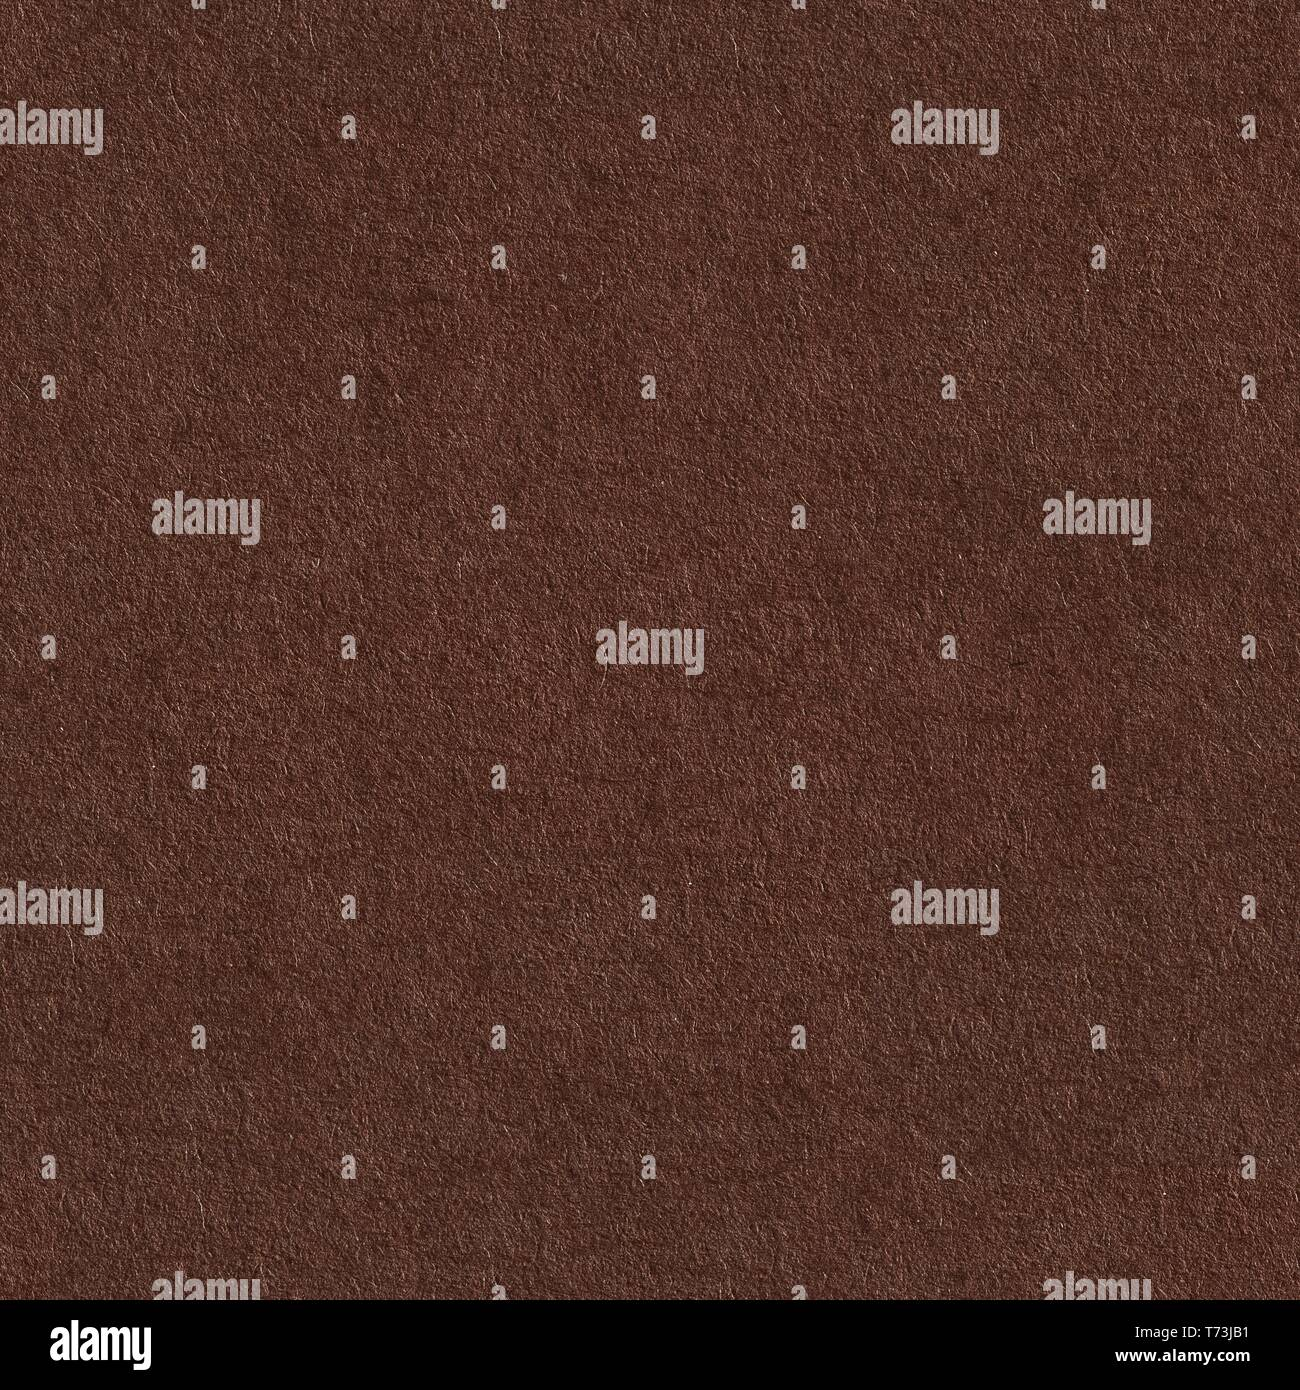 Seamless square texture. Old vintage brown paper texture or